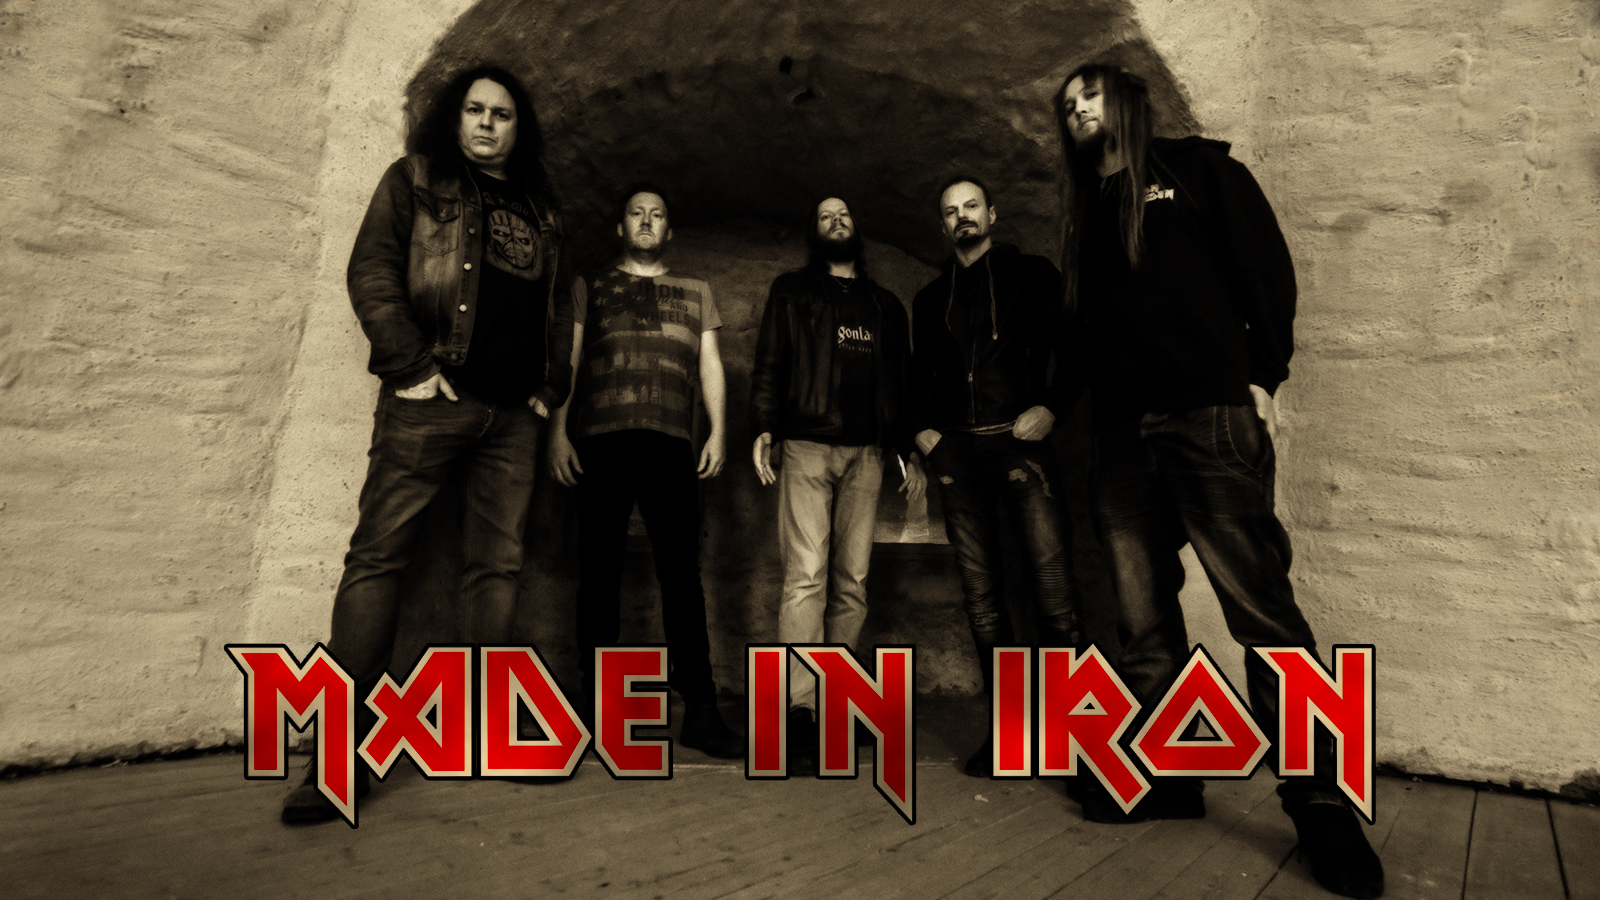 Made In Iron - The Tribute To The Beast